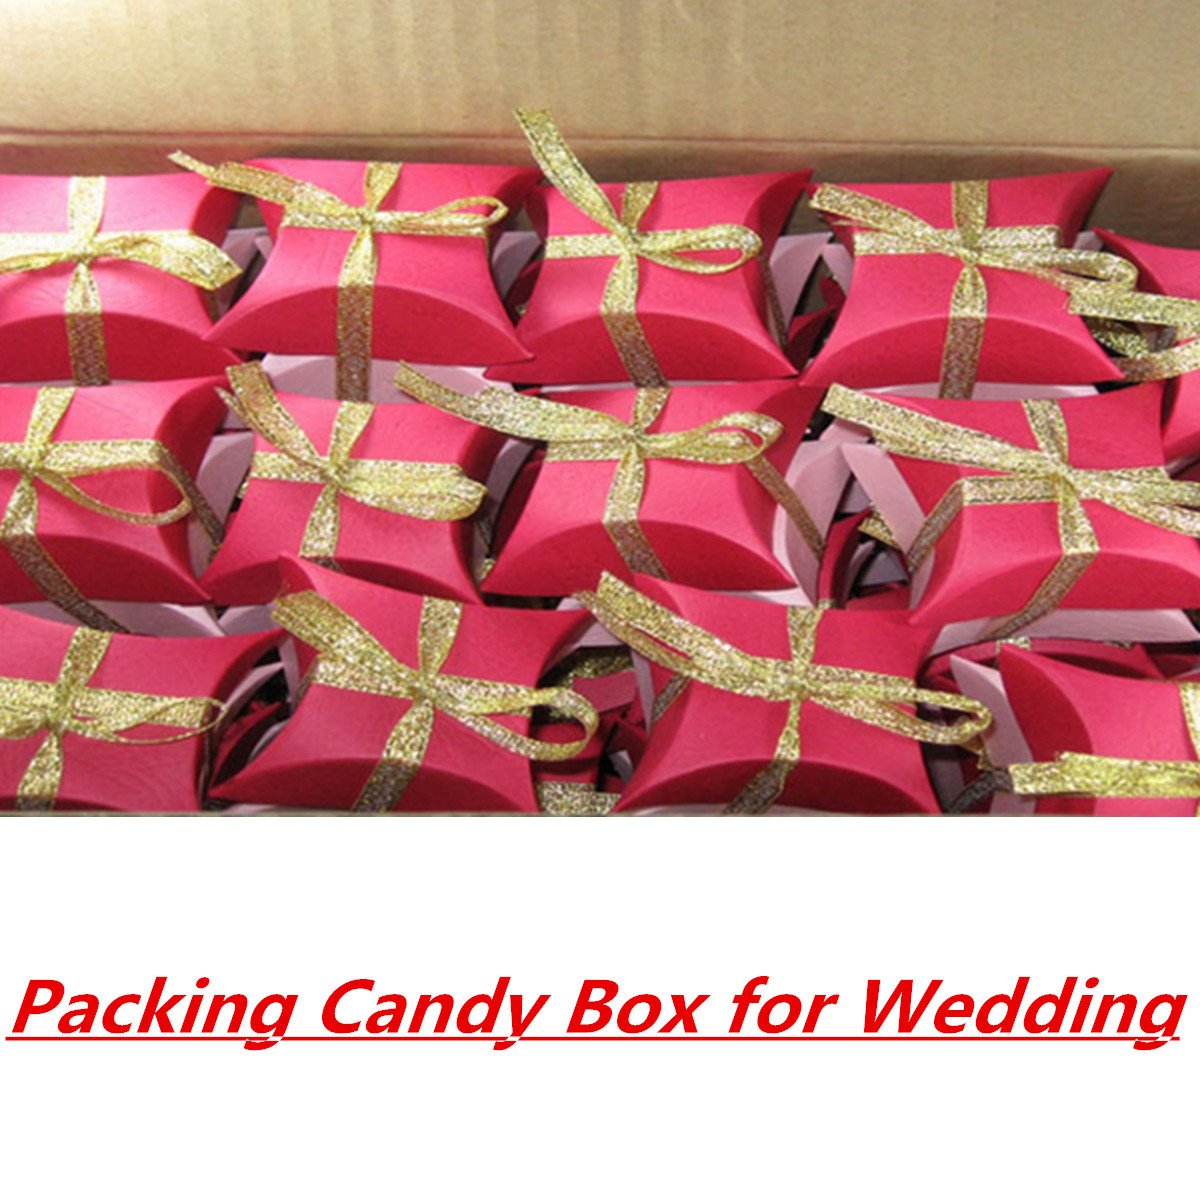 50mm 25 Yards Wire Edge Gold Silver glitter Effect Ribbon Wedding Party Gift Packing Accessories